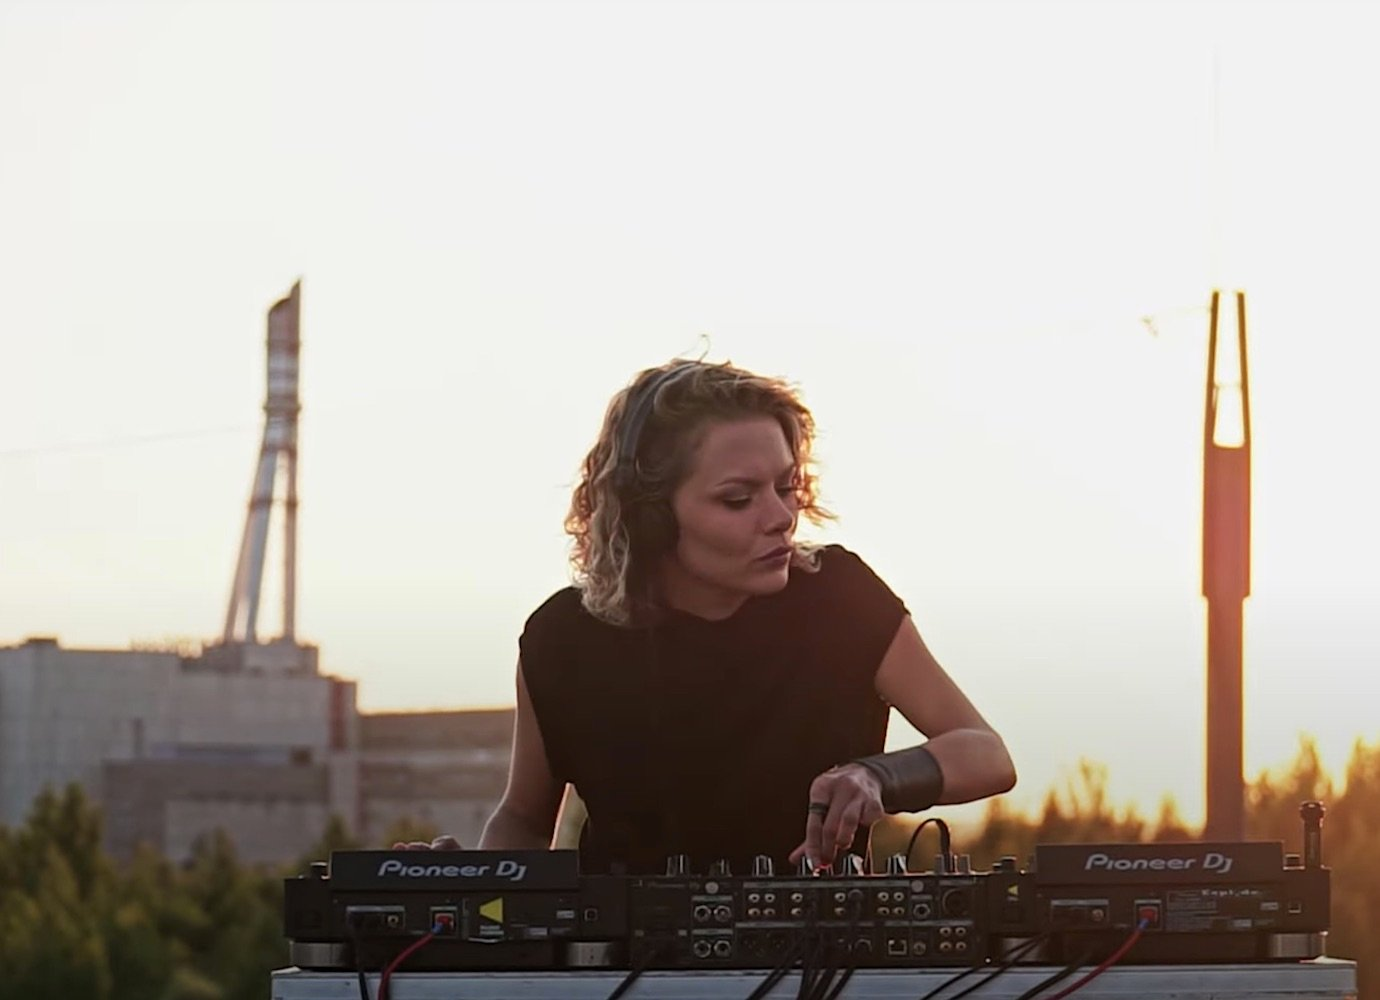 Listen to a one-hour techno set from the top of Chernobyl's sister nuclear power plant